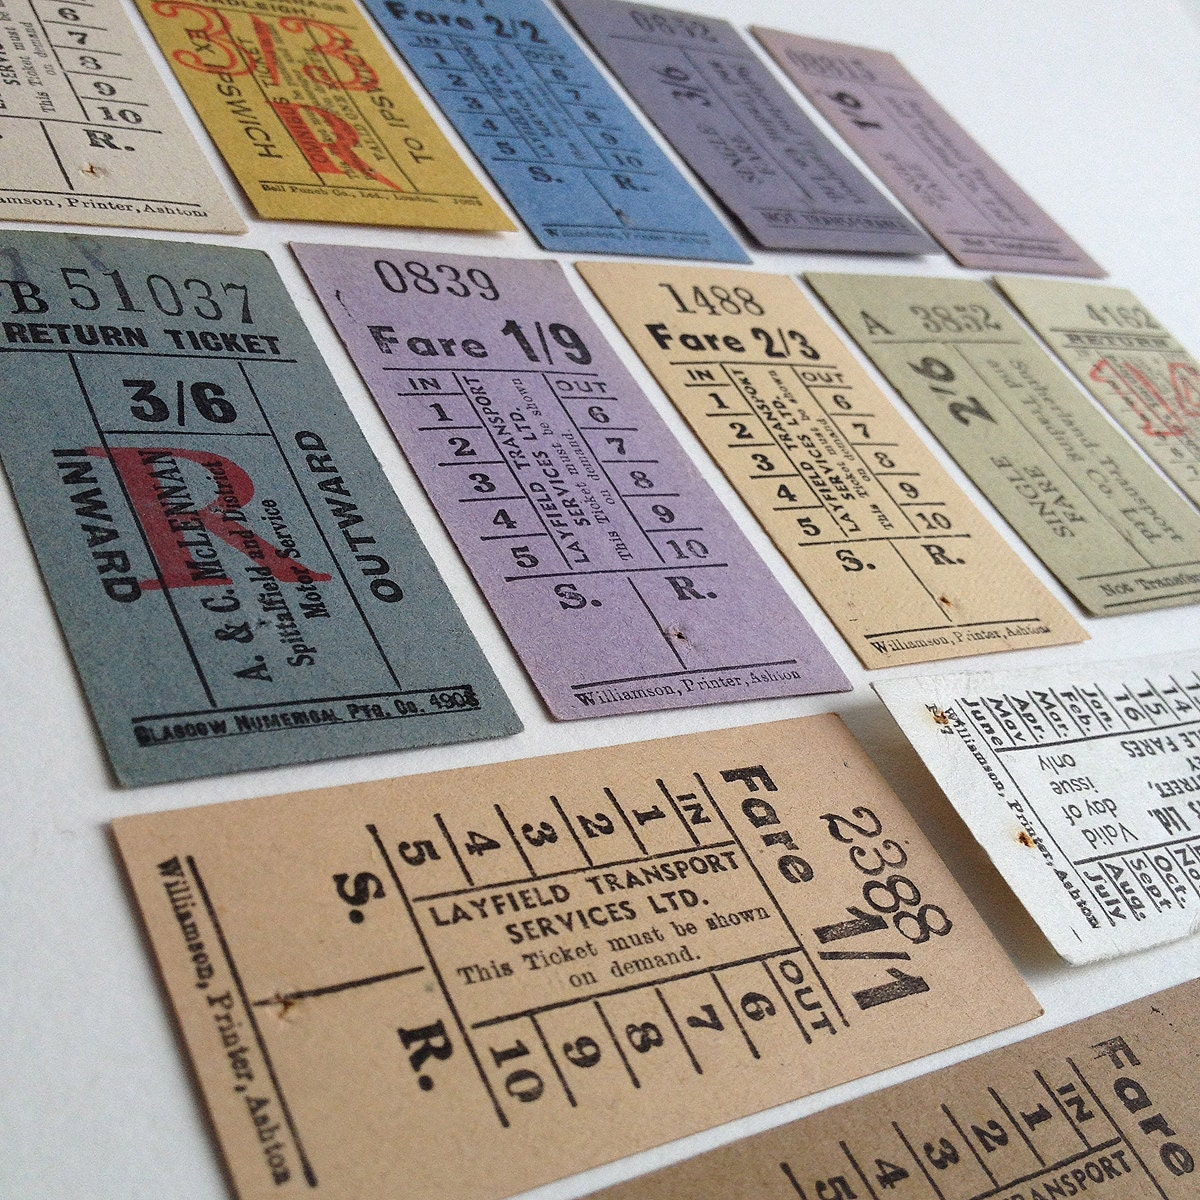 14 vintage British tickets, set of old pre-decimalisation ticket with values in various fractions